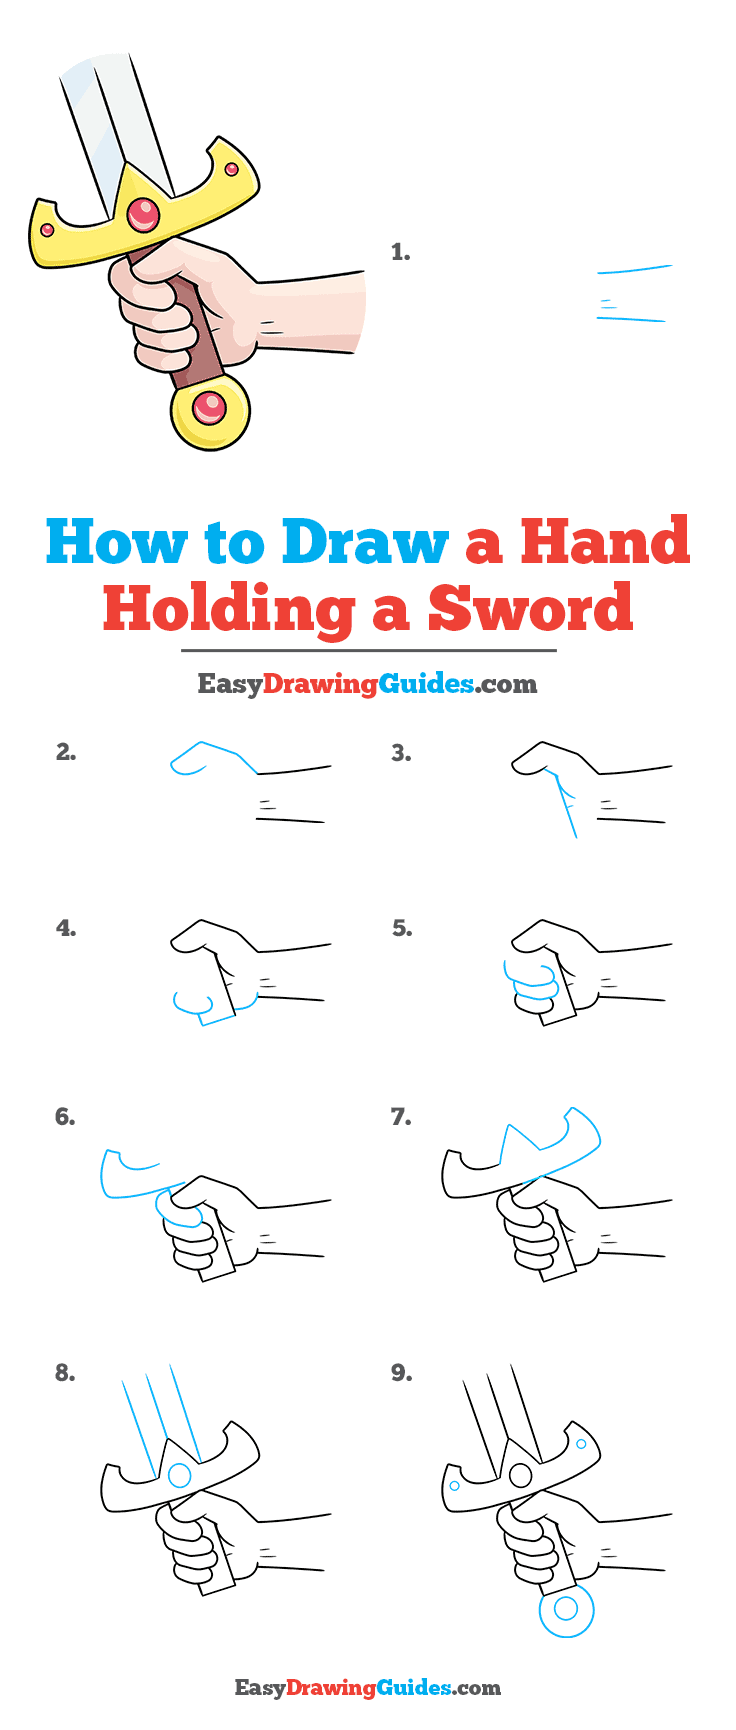 How to Draw Hand Holding a Sword